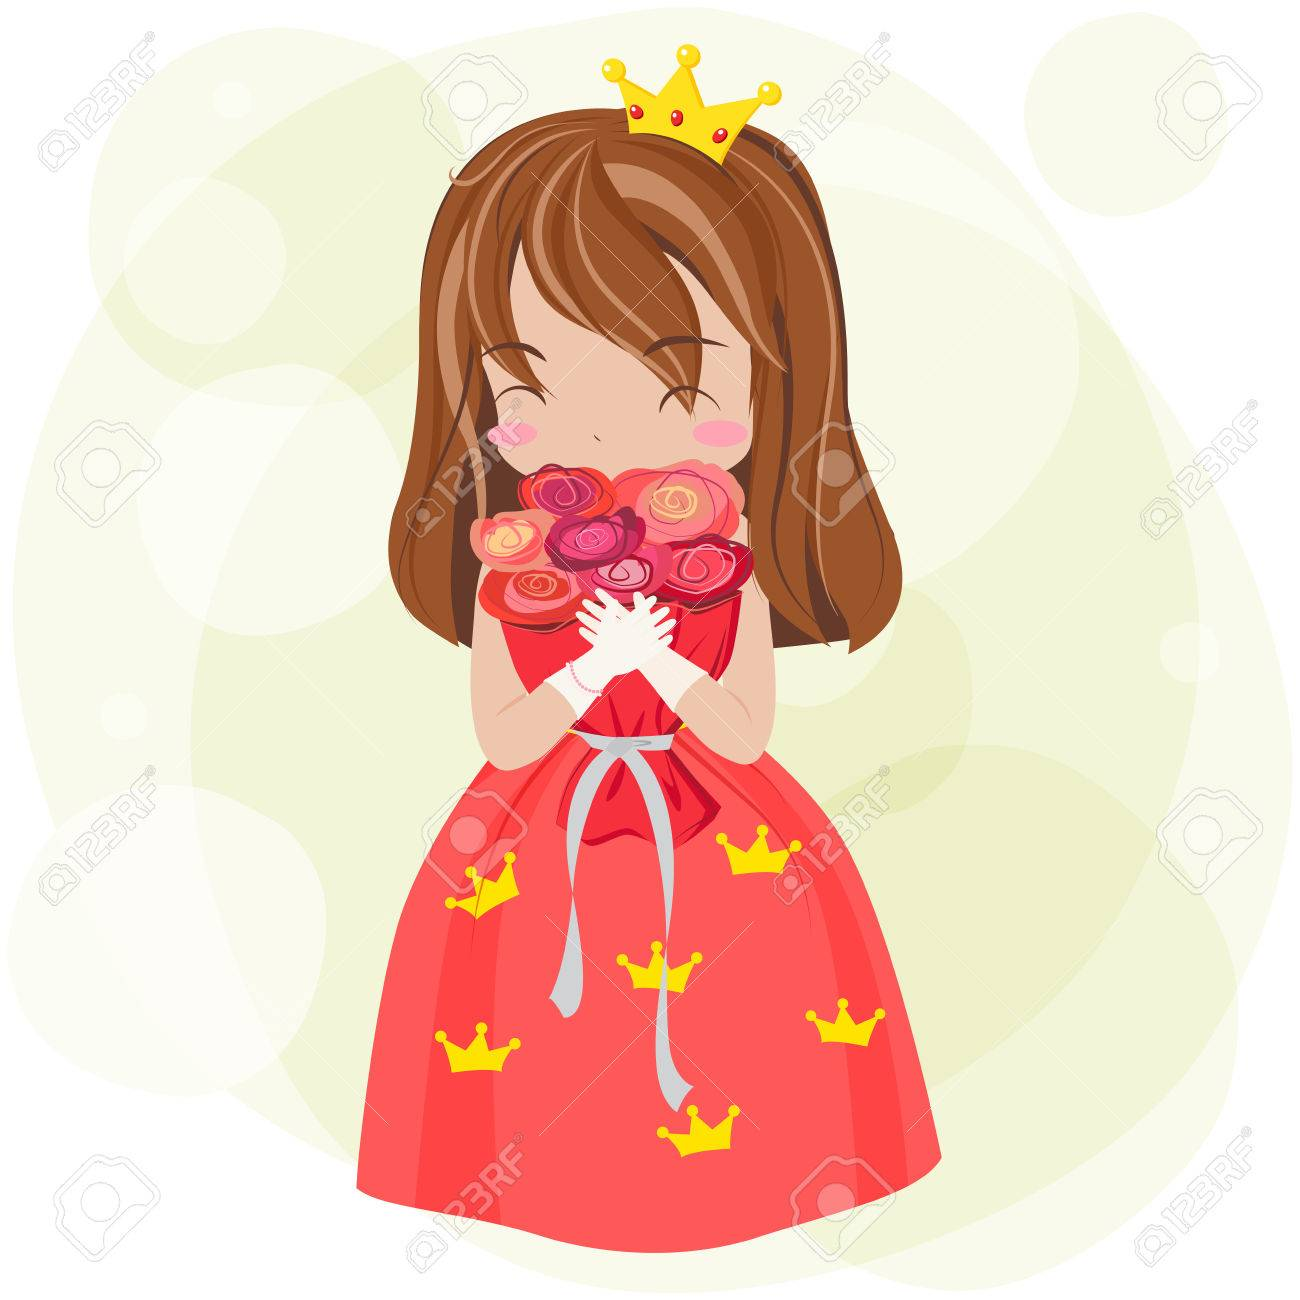 Cute Cartoon Princess With Red Dress And Crown Is Showing Happy Royalty Free Cliparts Vectors And Stock Illustration Image 42210450 Crown icon, golden crown, gold crown illustration png clipart. cute cartoon princess with red dress and crown is showing happy